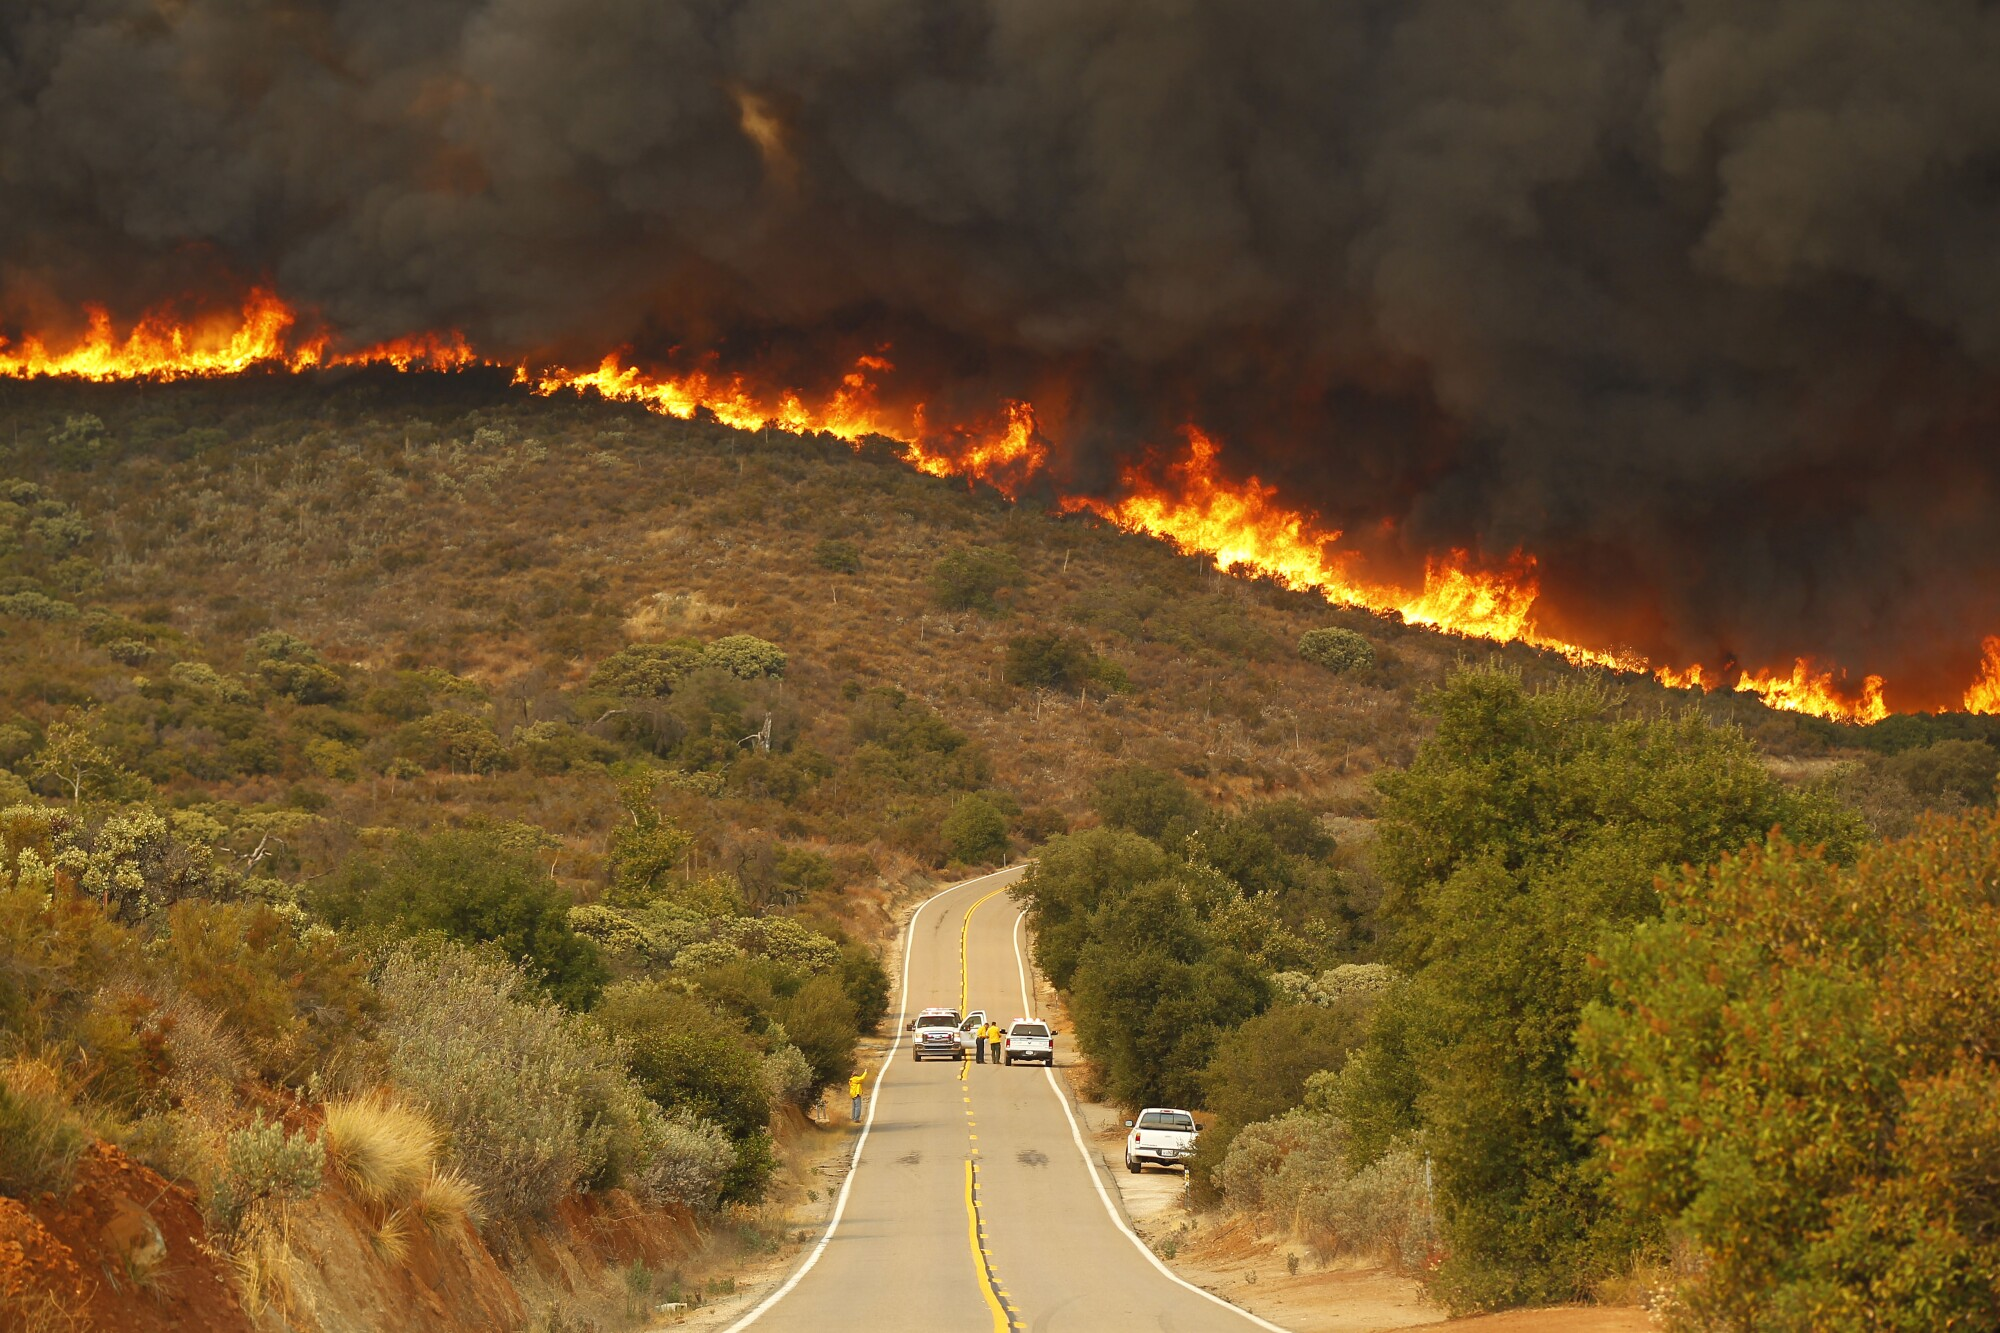 San Diego Sheriffs and CDF firefighters stage on Lyons Valley Road during the Valley fire.